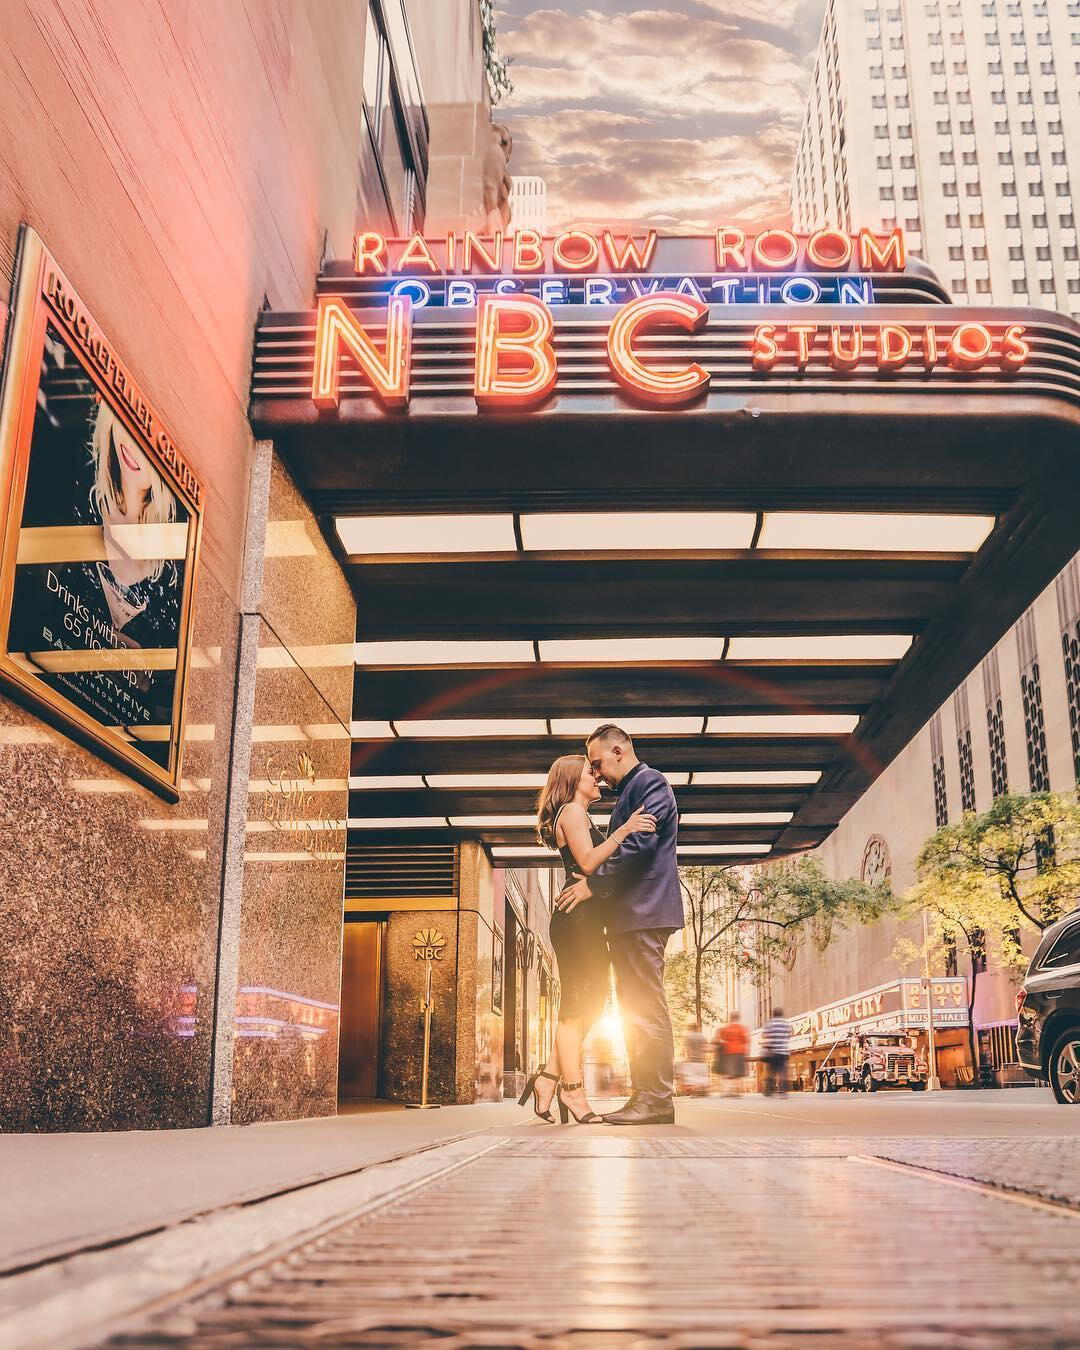 A couple engagement shoot captured by wedding photographer Orlando Oliveira in New York.